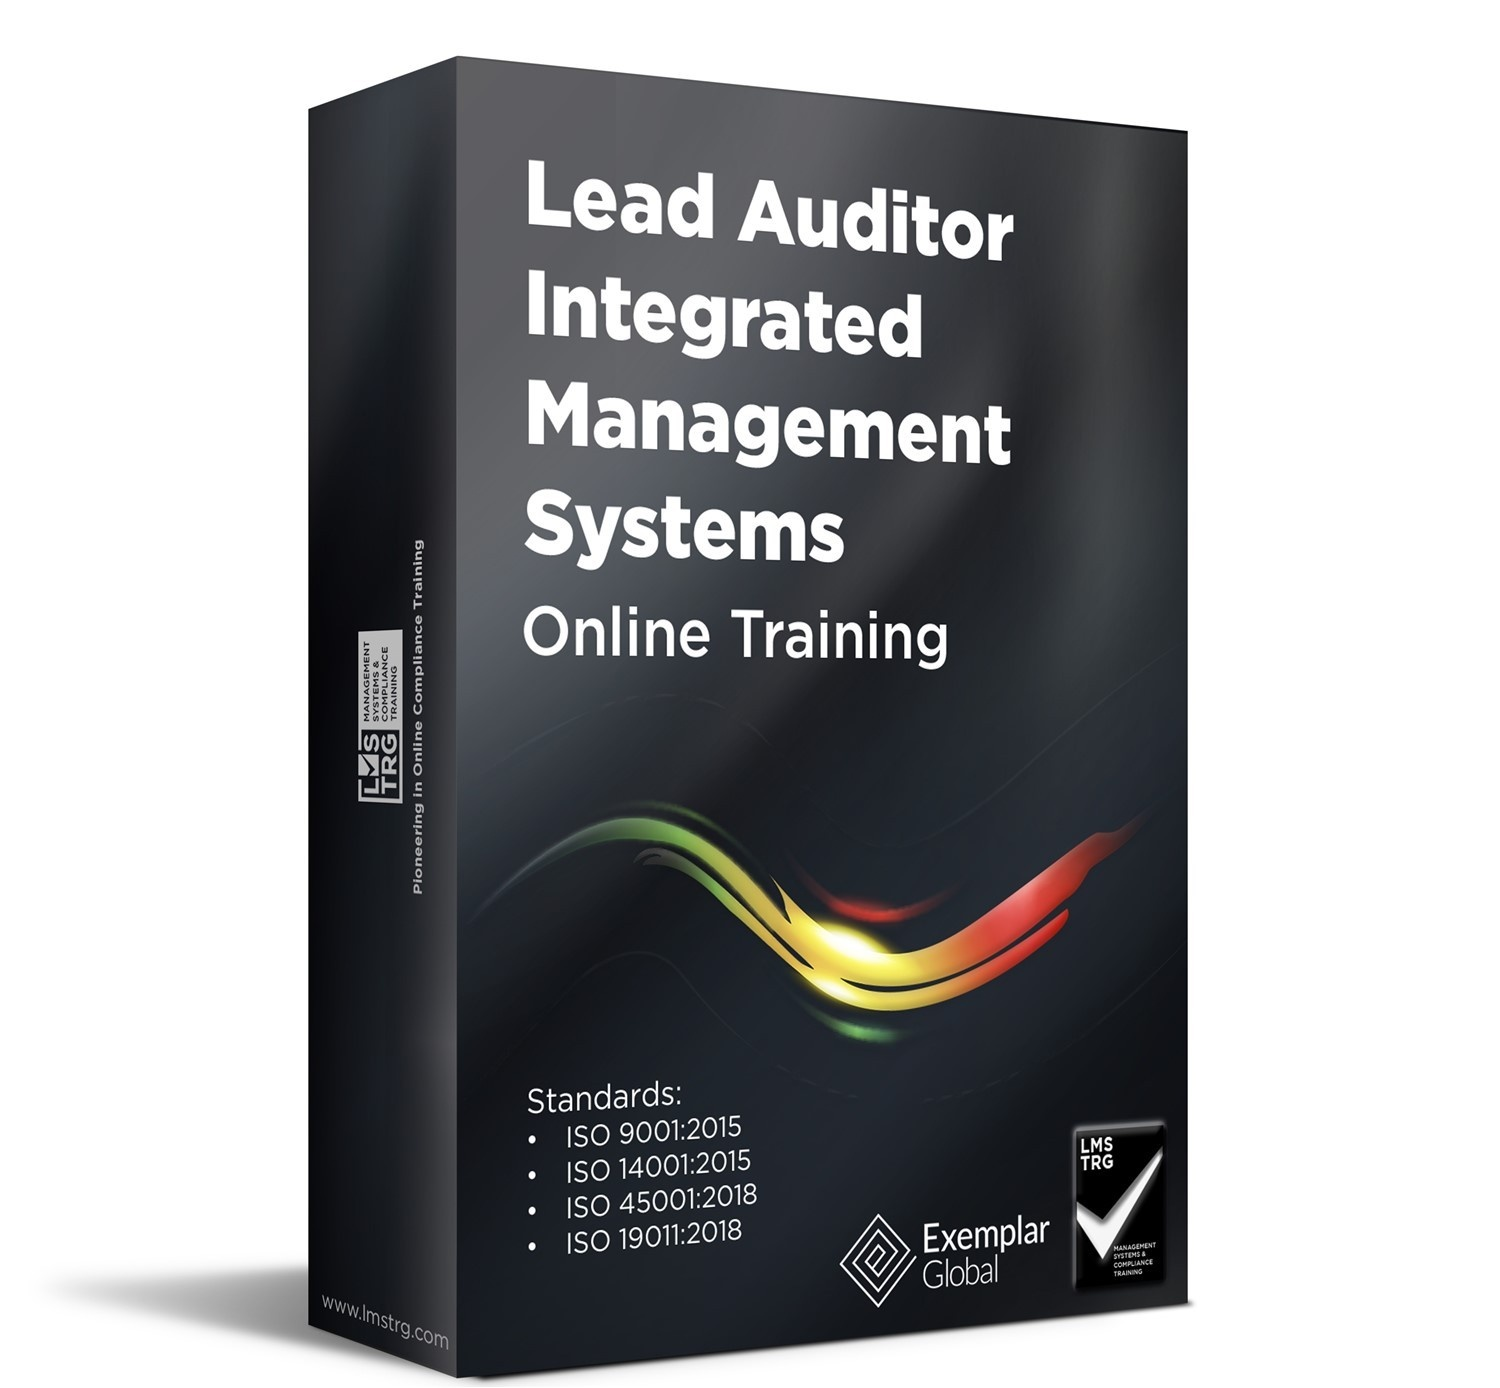 Integrated Management Systems (IMS) External Lead Audit Training Online